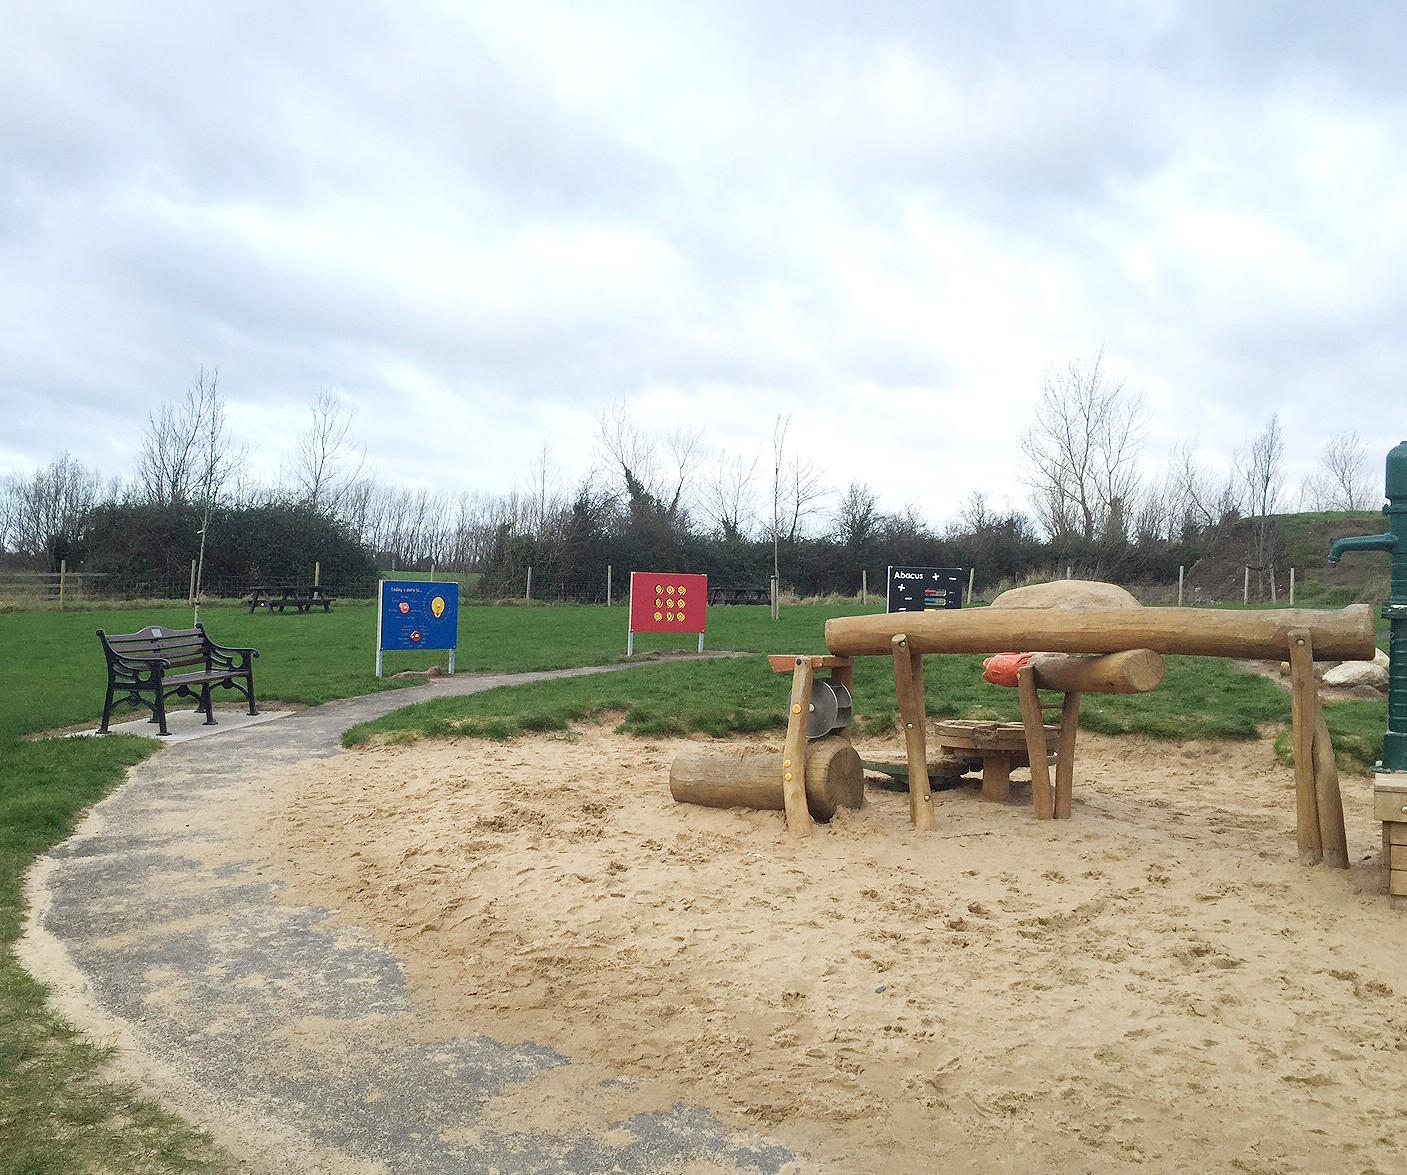 Things to do in County Dublin, Ireland - St. Catherine's Park - YourDaysOut